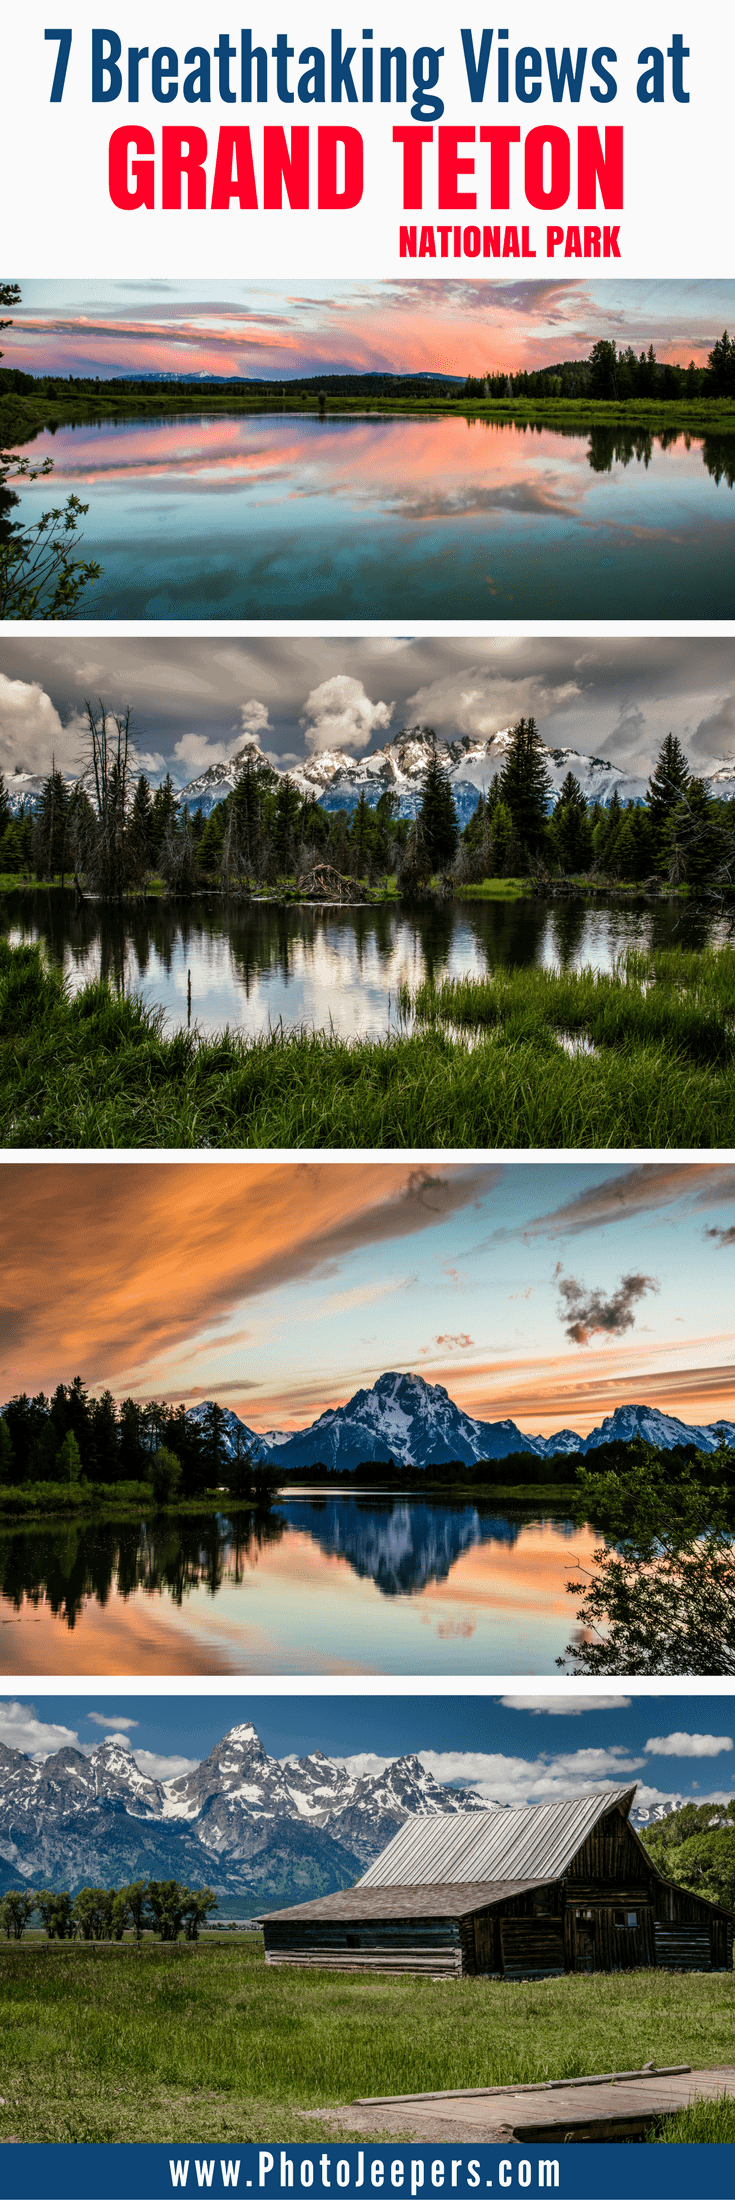 Grand Teton National Park is a breathtaking mountain getaway in Wyoming, USA. Every direction you look, you will be blown away by the incredible beauty of nature. Though the whole park is beautiful, we will share our favorite spots to take pictures in Grand Teton National Park. Make sure you stop at this beautiful park if you make a trip to Yellowstone National Park in Wyoming. Don't forget to save these best places to take pictures in Grand Teton National Park to your travel board so you can find them later.